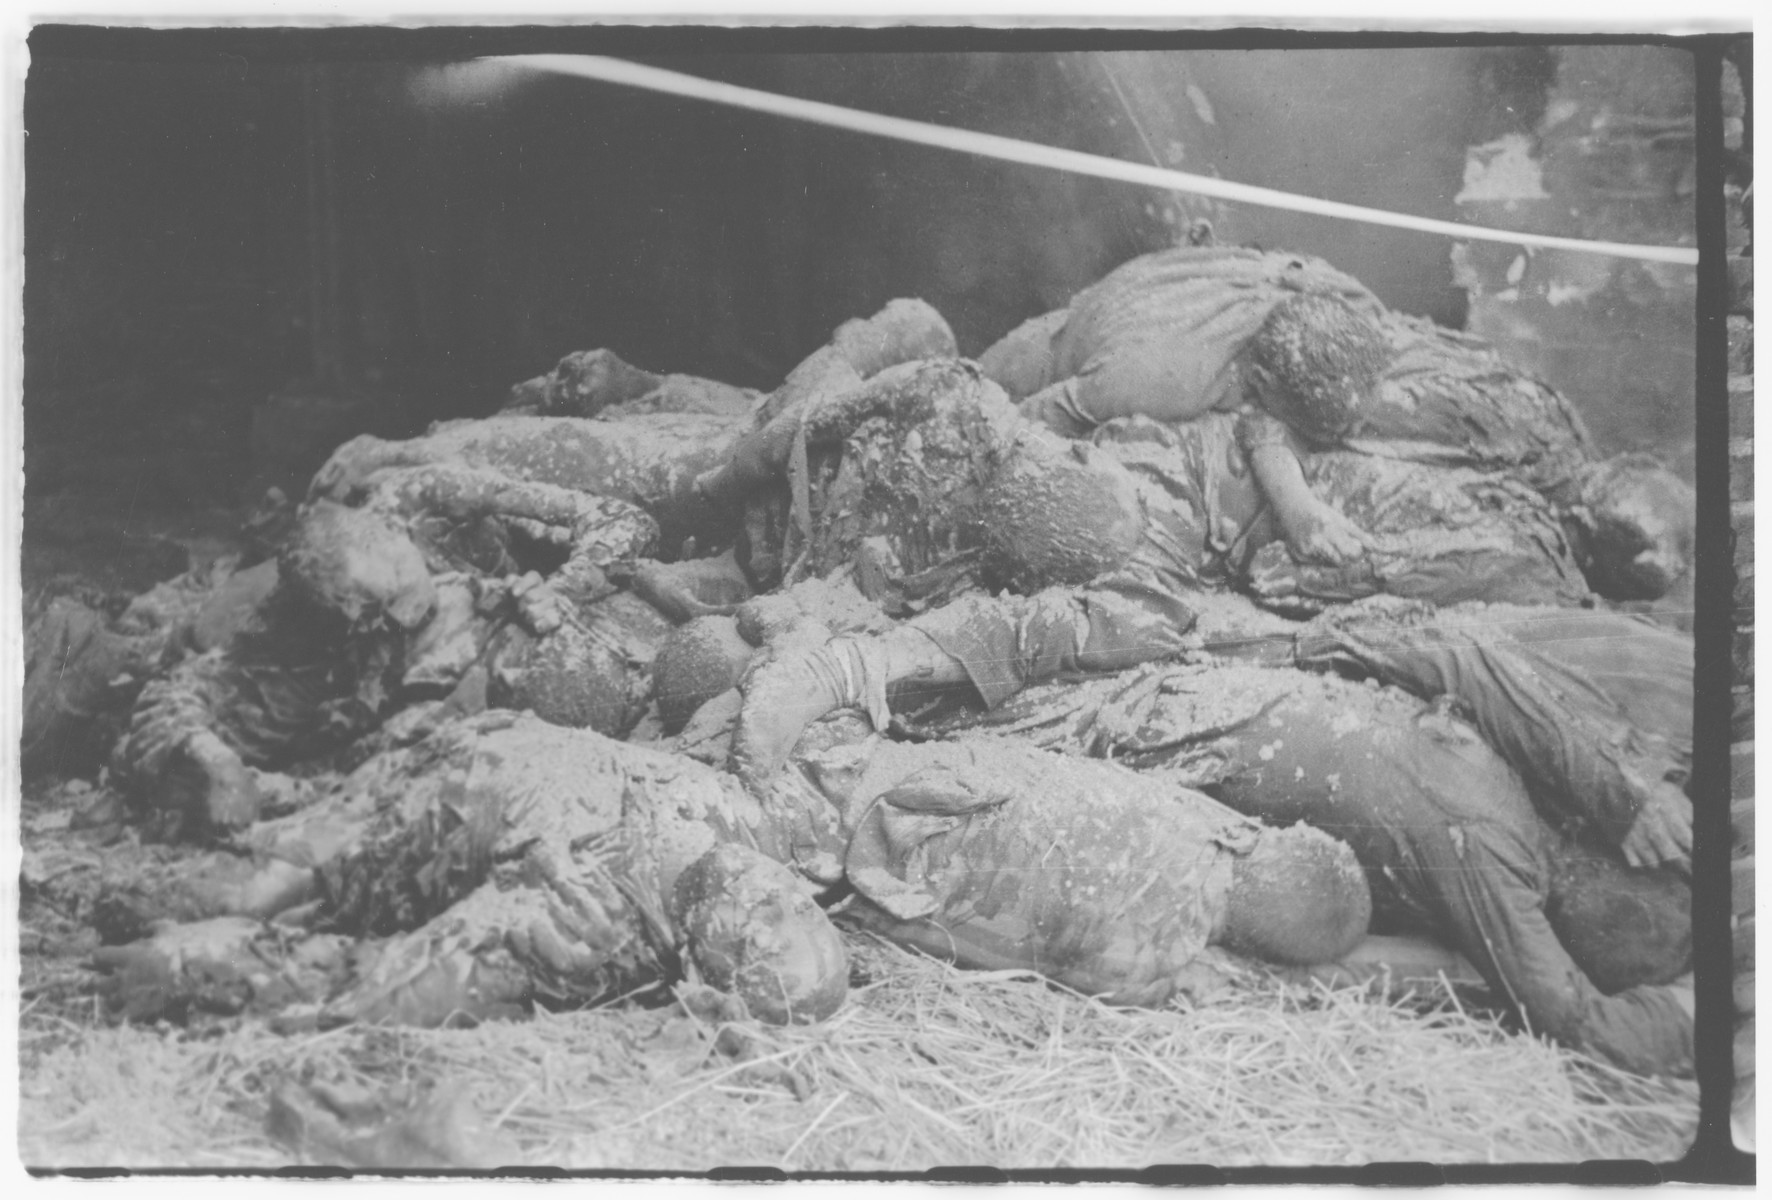 A pile of burned corpses, victims of the Gardelegen Atrocity, lie piled in a barn.